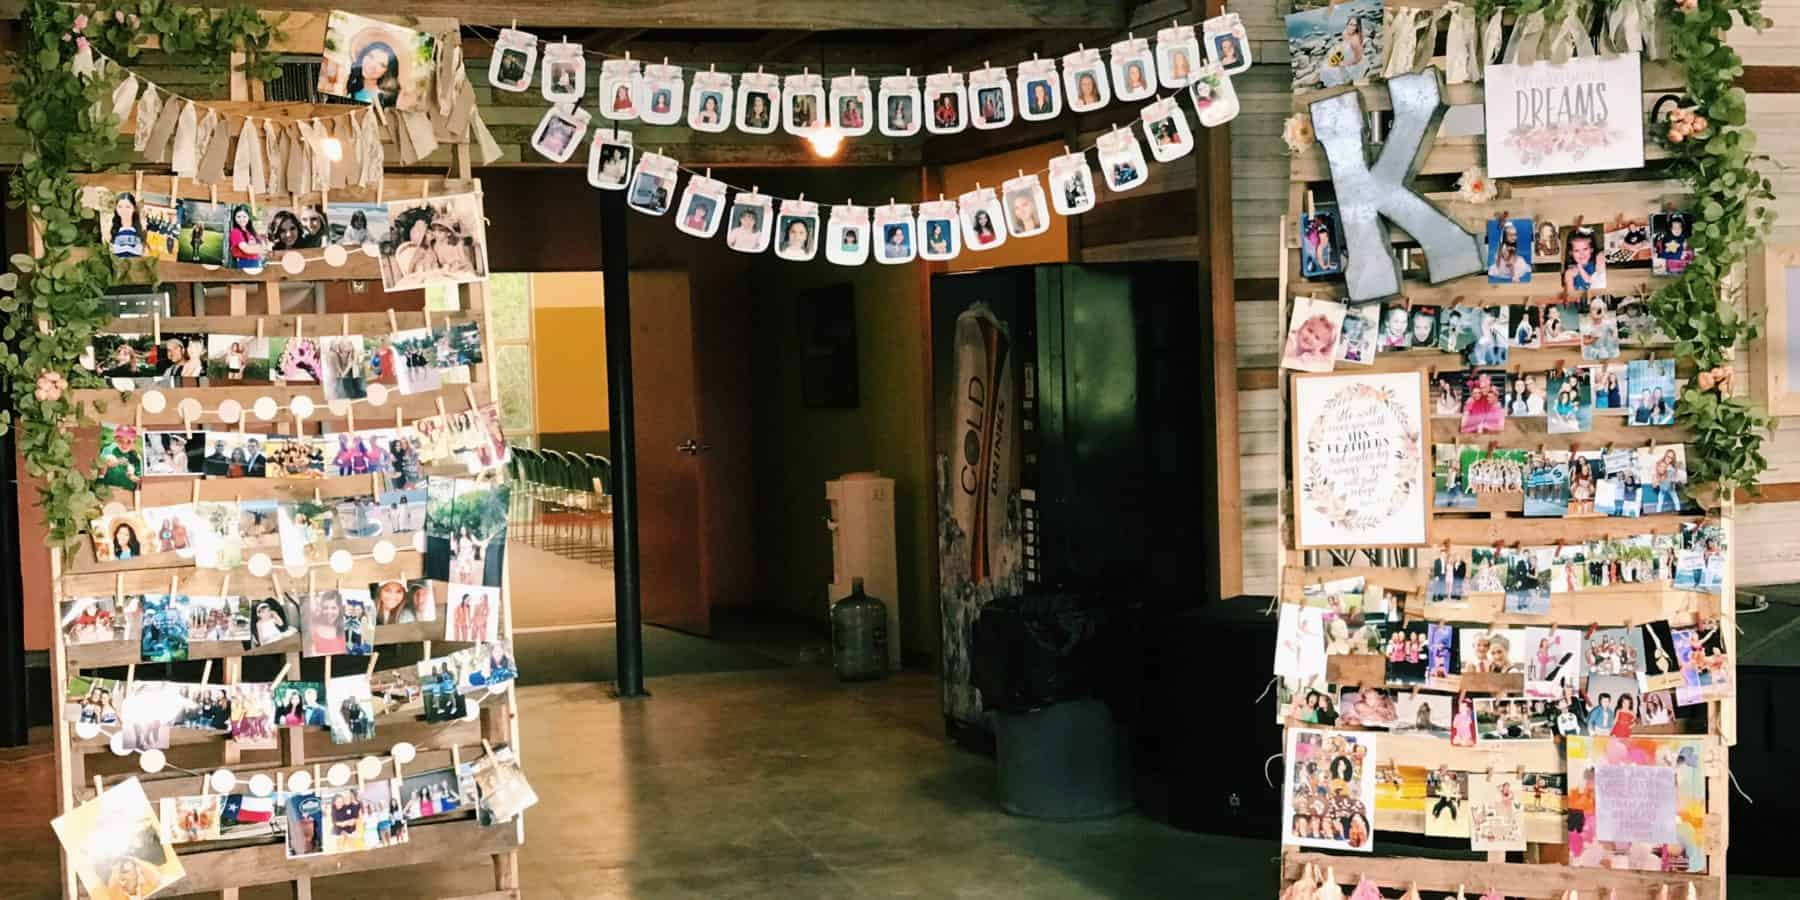 Grad Party Picture Collage Wall Photo display idea. Easy DIY Graduation Party Decoration Ideas using Pictures